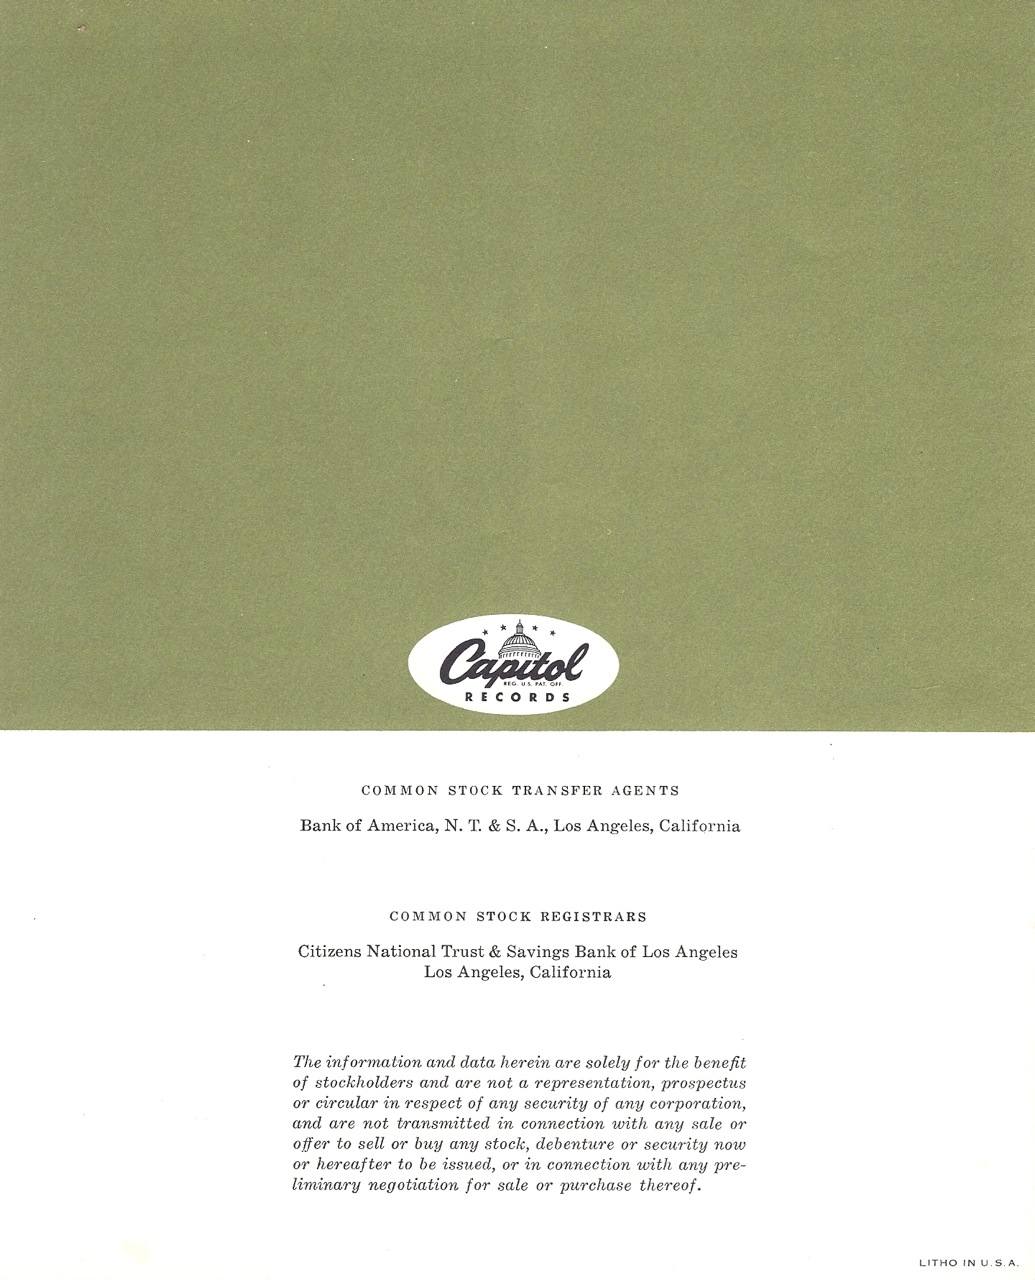 1959june30-annualreport-7